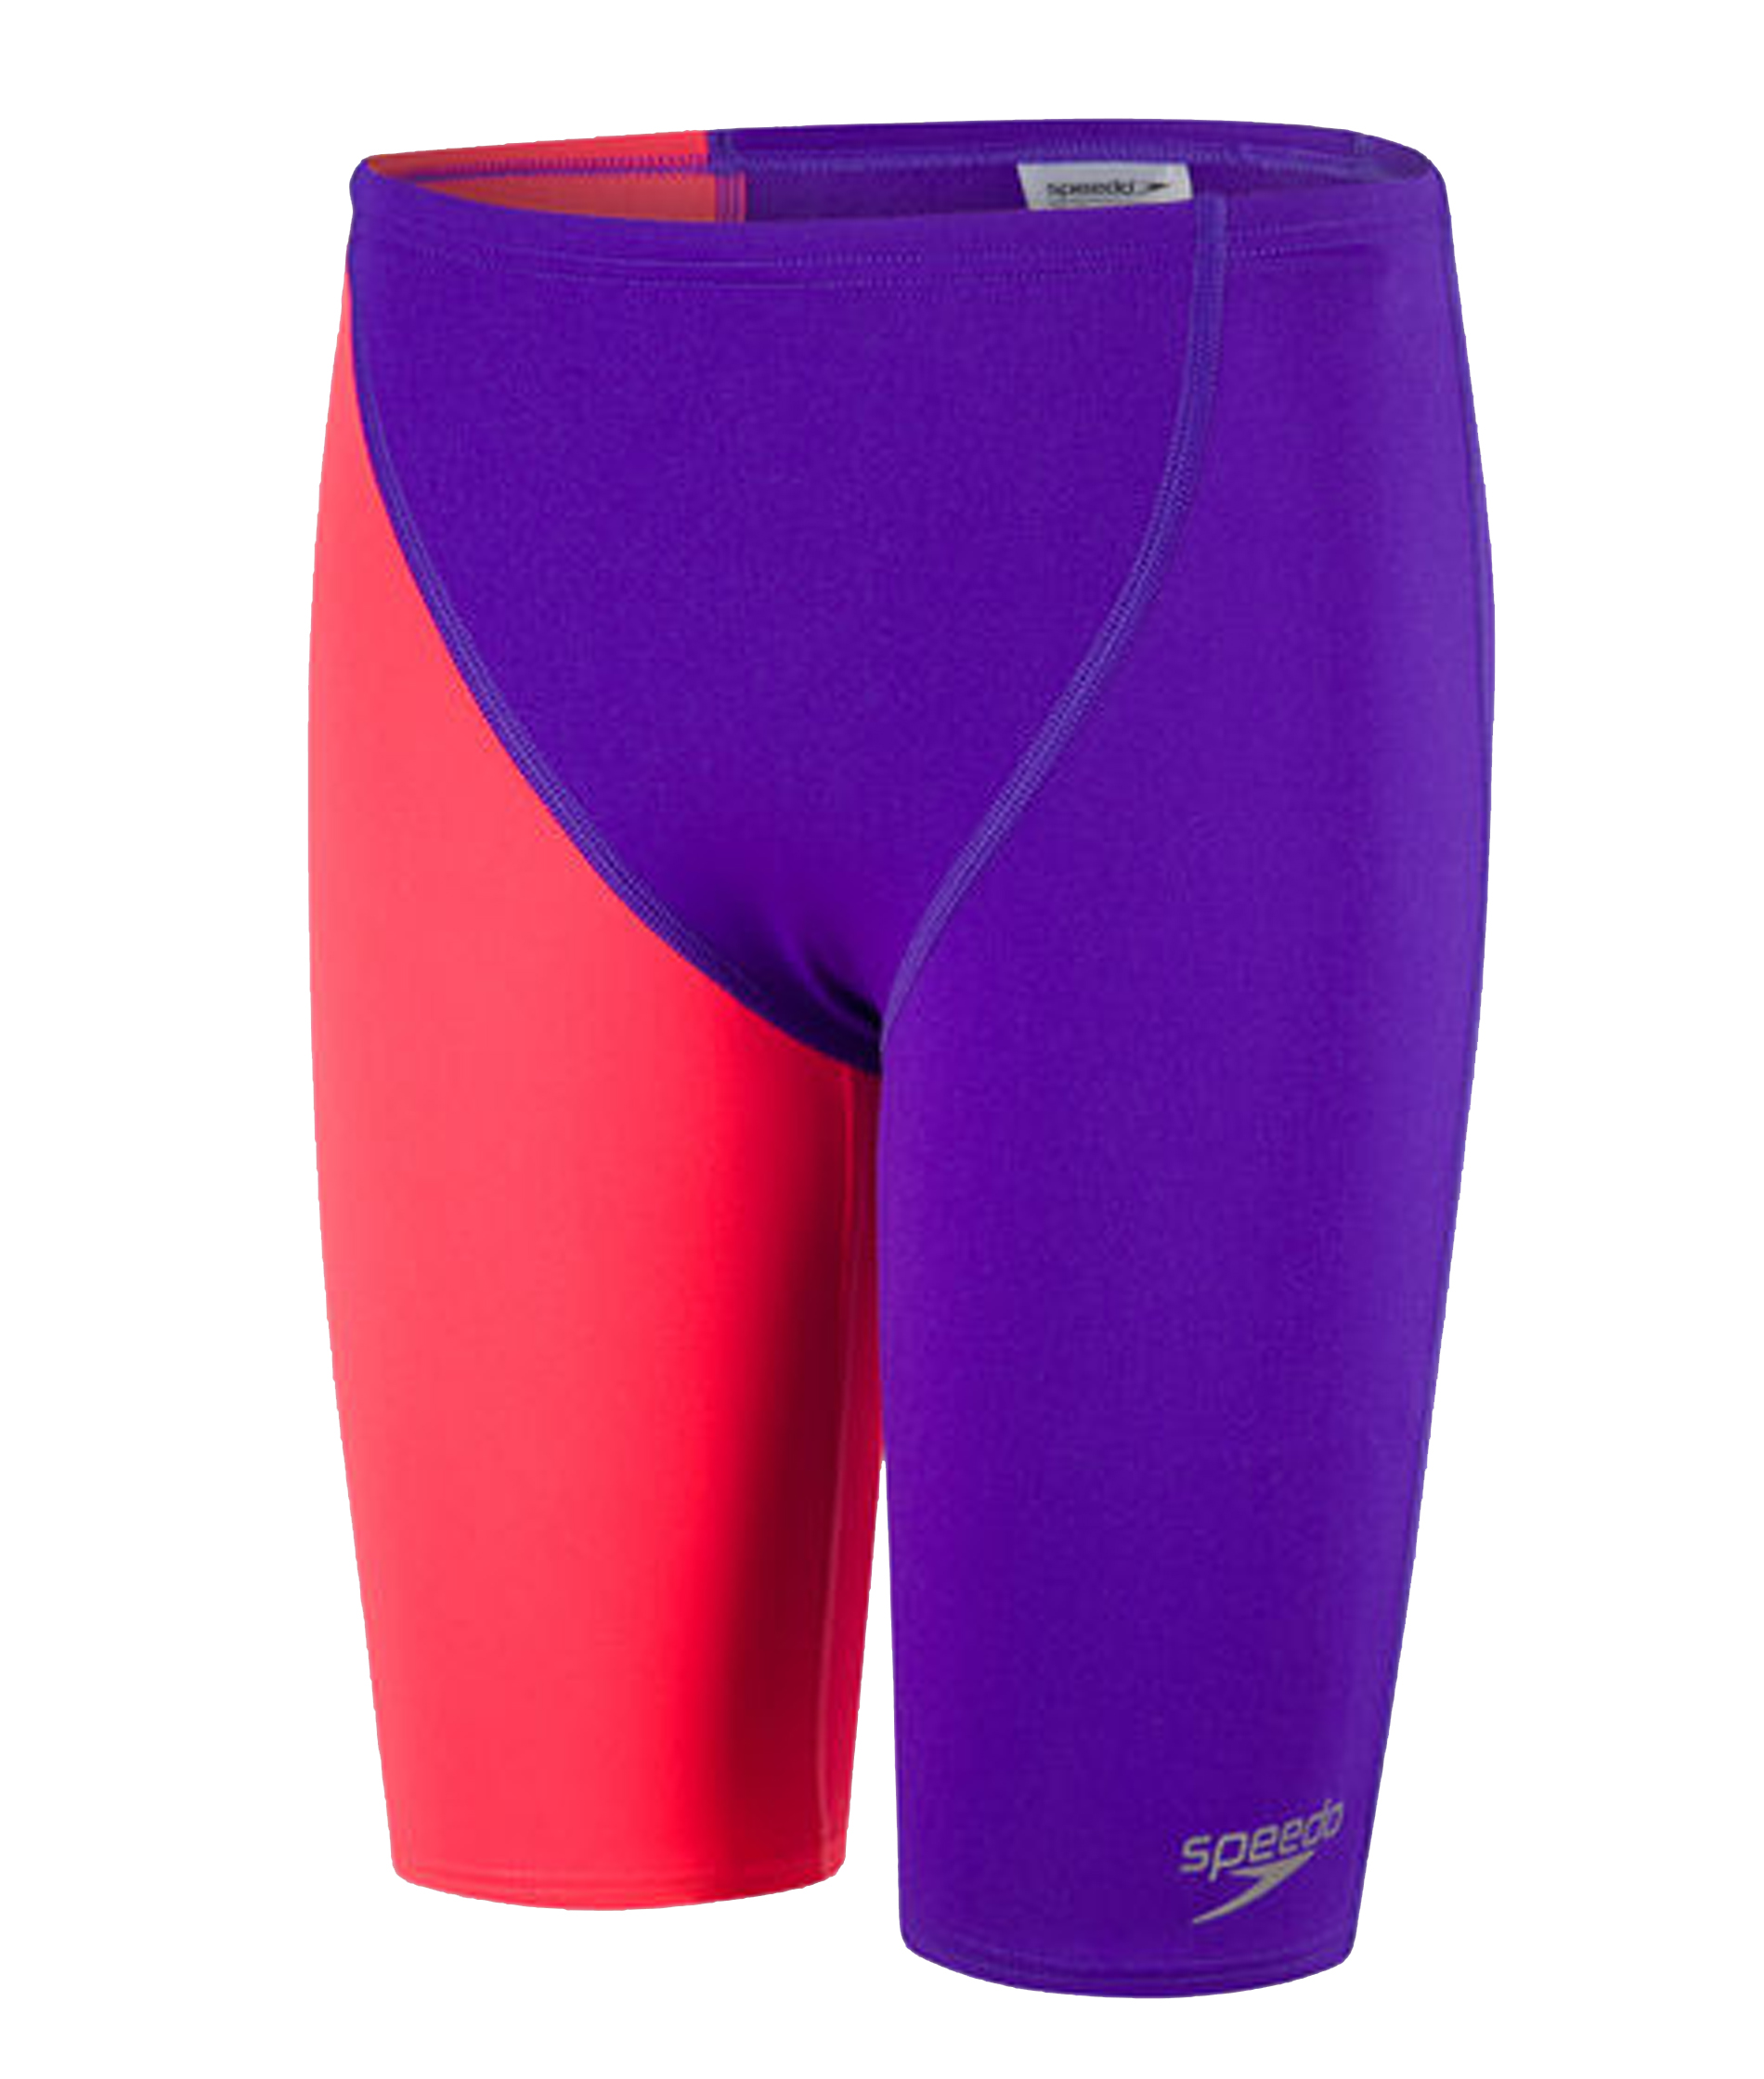 Speedo Junior Fastskin Endurance+ High Waisted Jammer - Purple/Red (24-30)